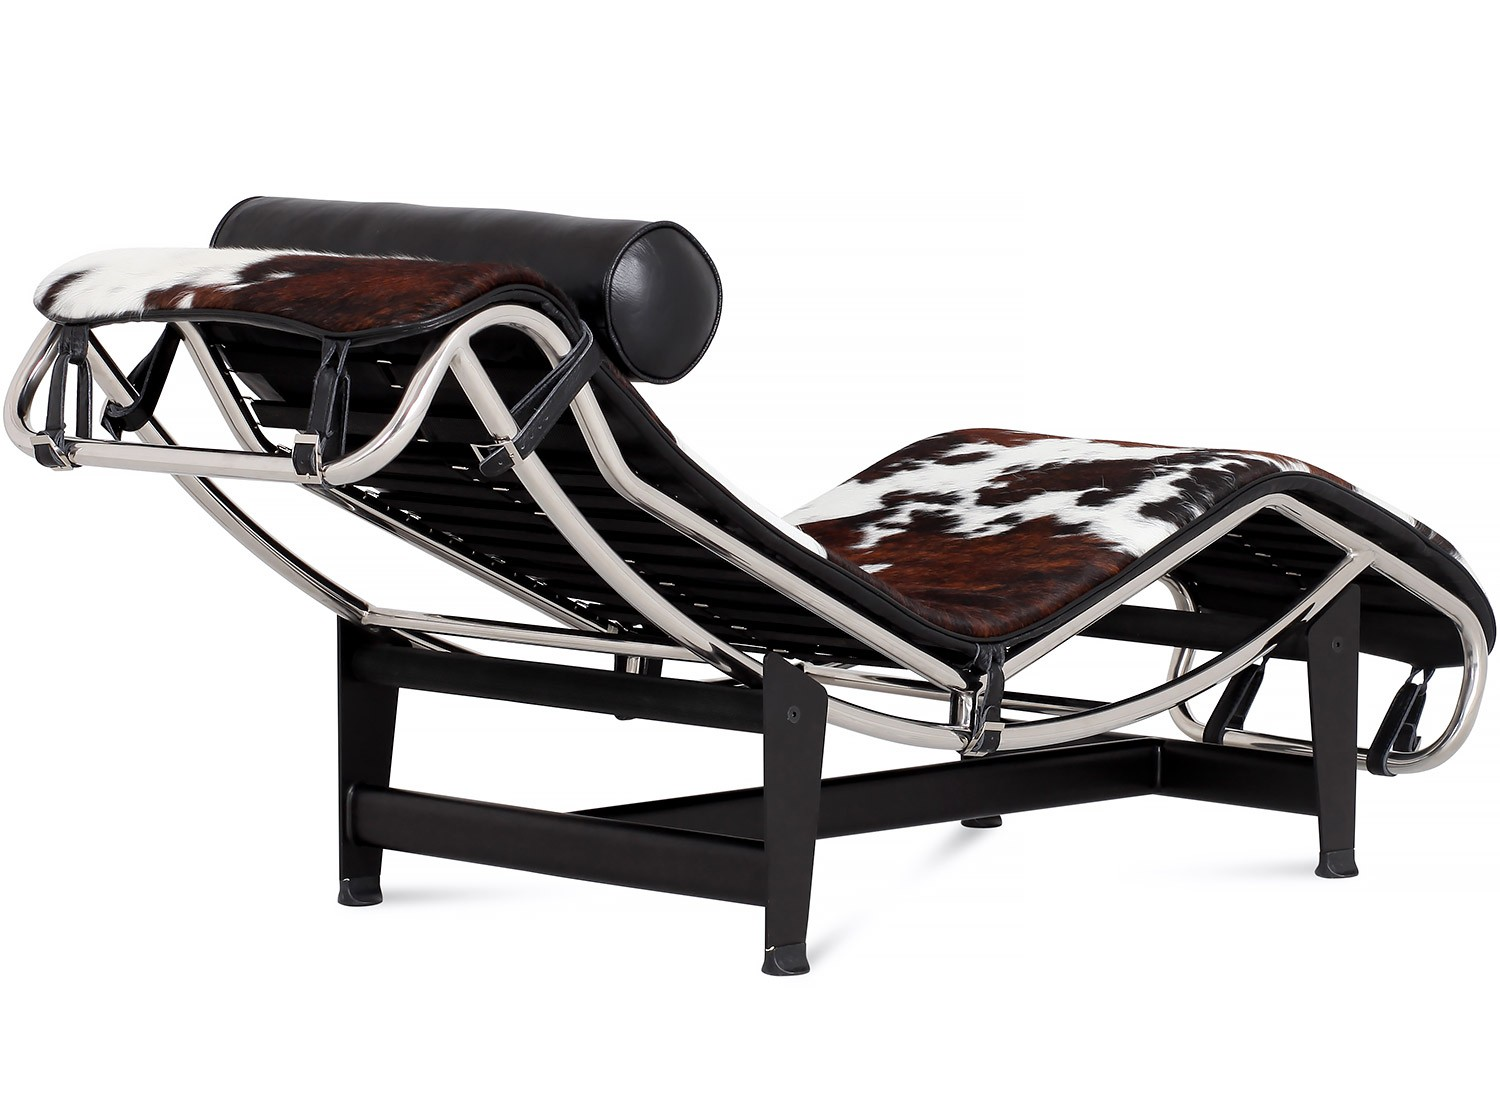 Le corbusier lc4 chaise longue cowhide platinum replica for Chaise longue design le corbusier